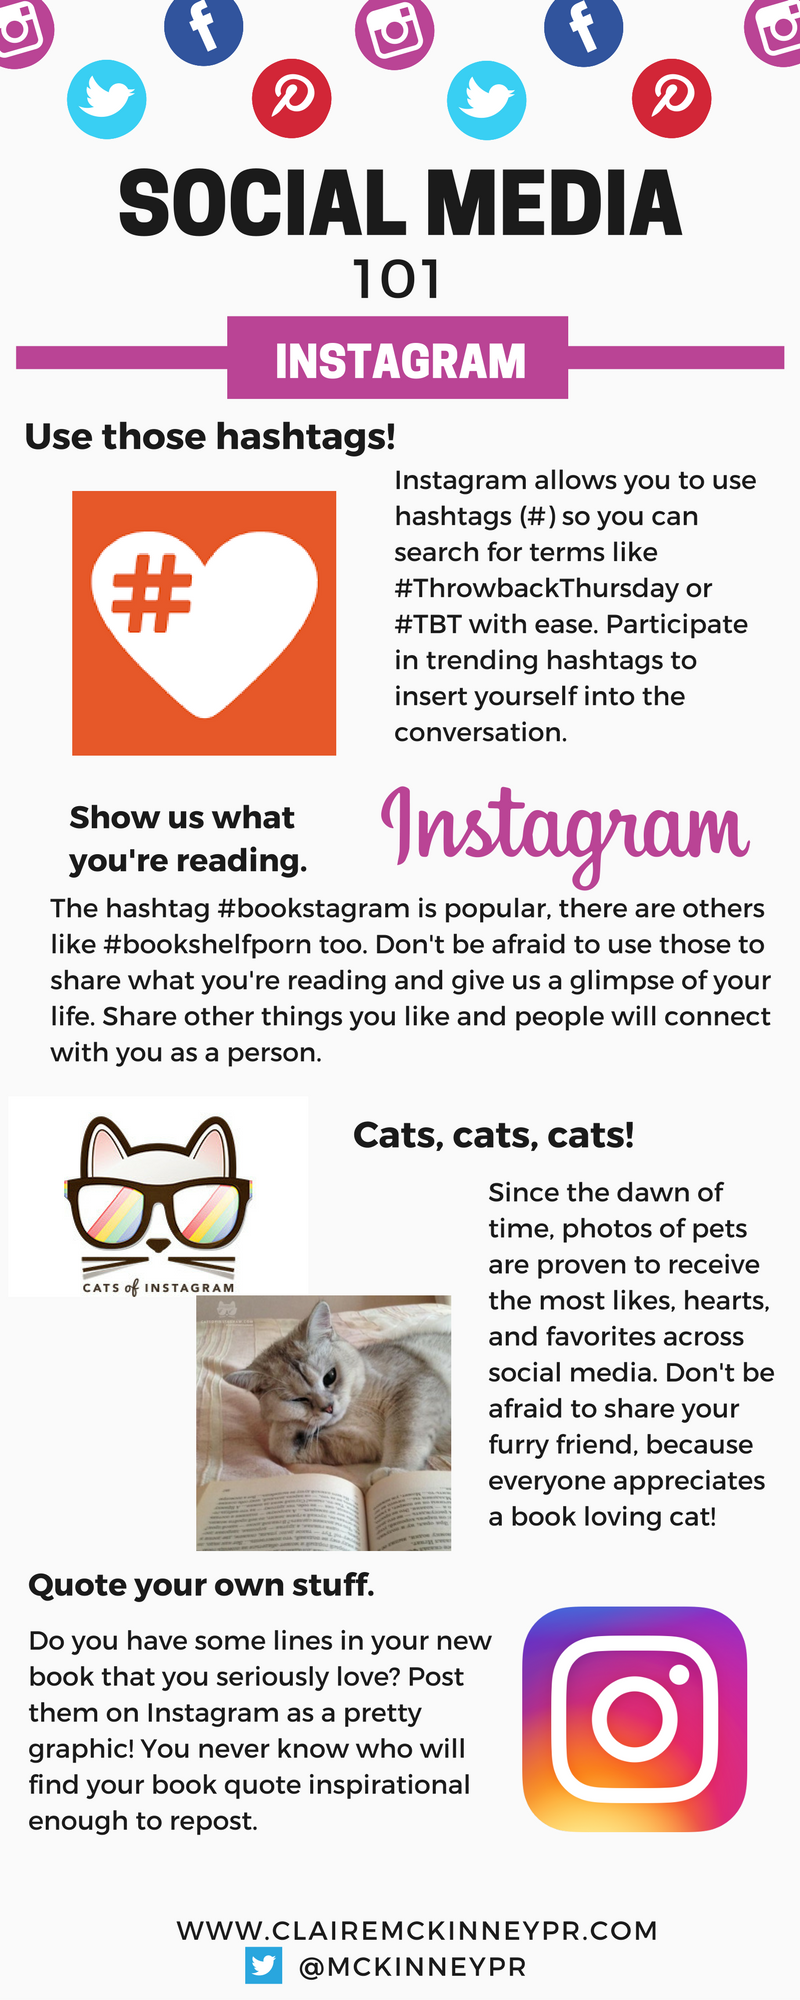 social media instagram infographic